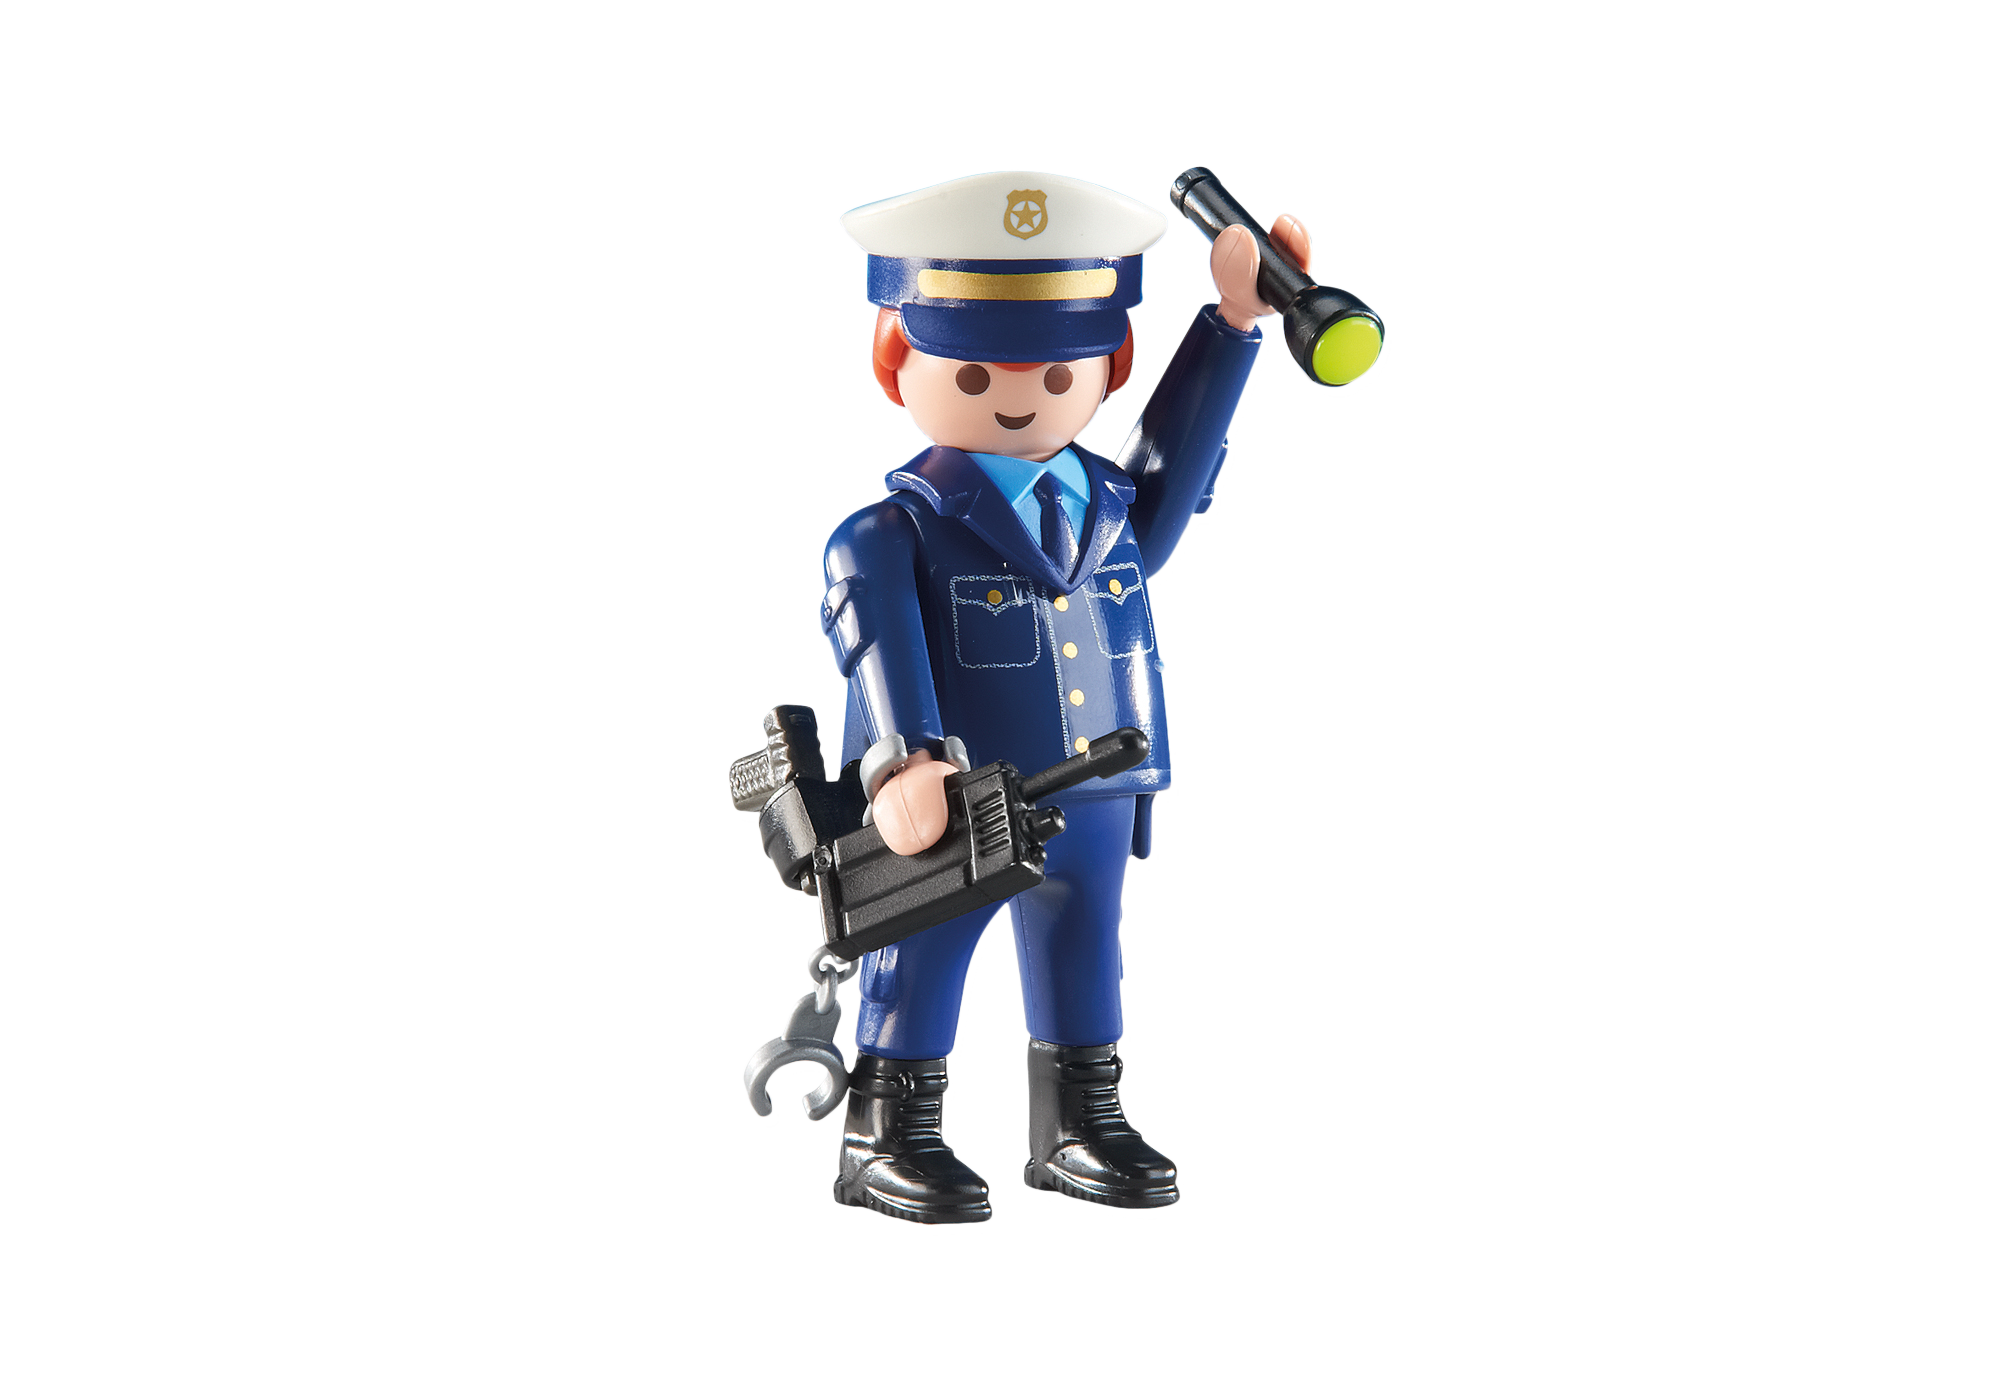 http://media.playmobil.com/i/playmobil/6502_product_detail